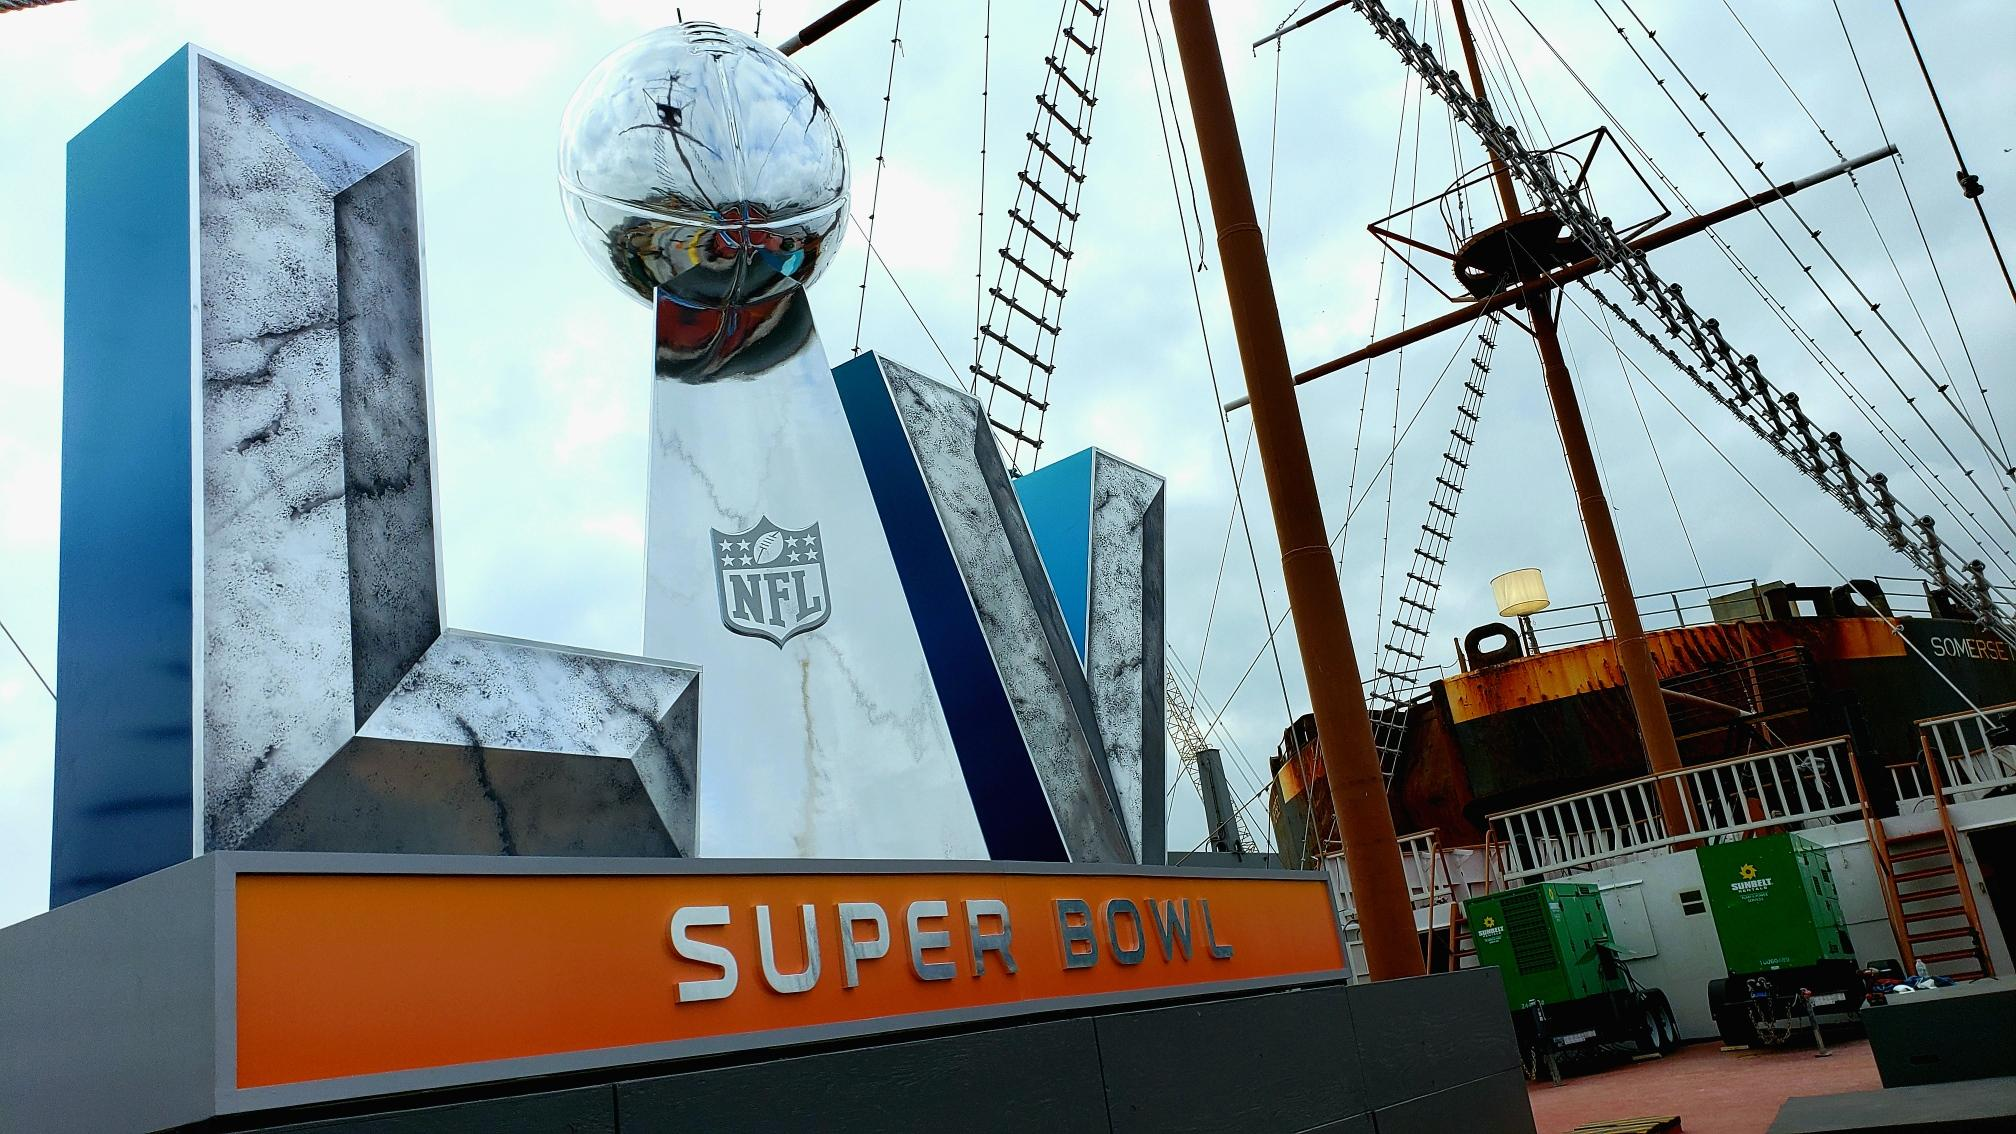 16 foot statue created for Super Bowl 2021